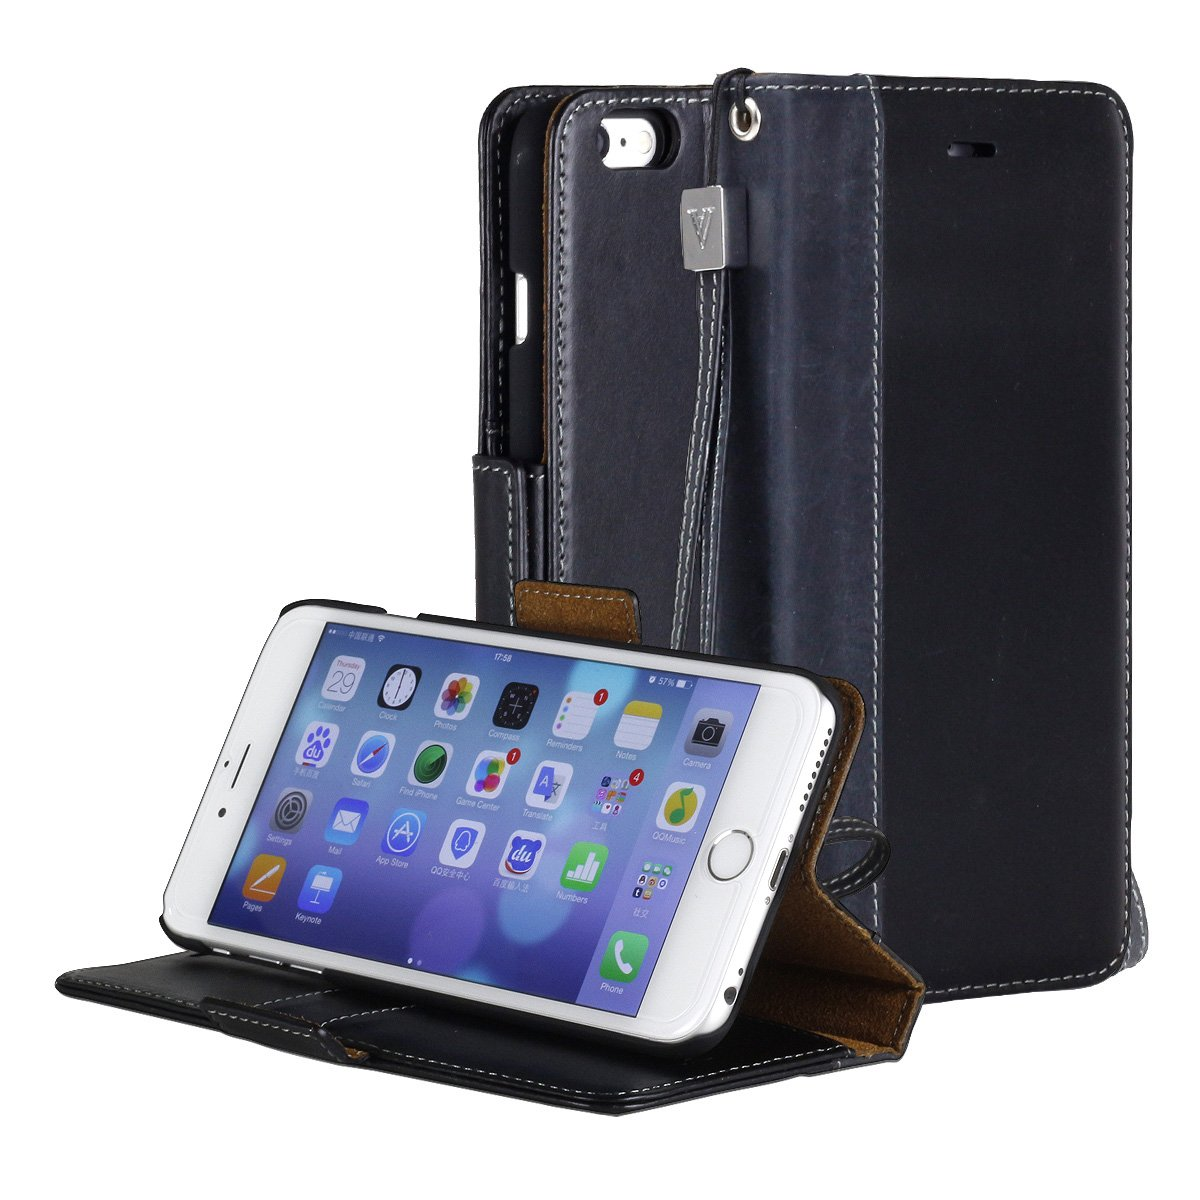 iPhone 6S Plus case, ACEABOVE iPhone 6S Plus Wallet Case [Book Cover Case] [Black] - Genuine Leather Wallet Cover with STAND Flip Cover and [Card Slots] and [Hand Strap] for Apple iPhone 6S Plus / iPhone 6 Plus